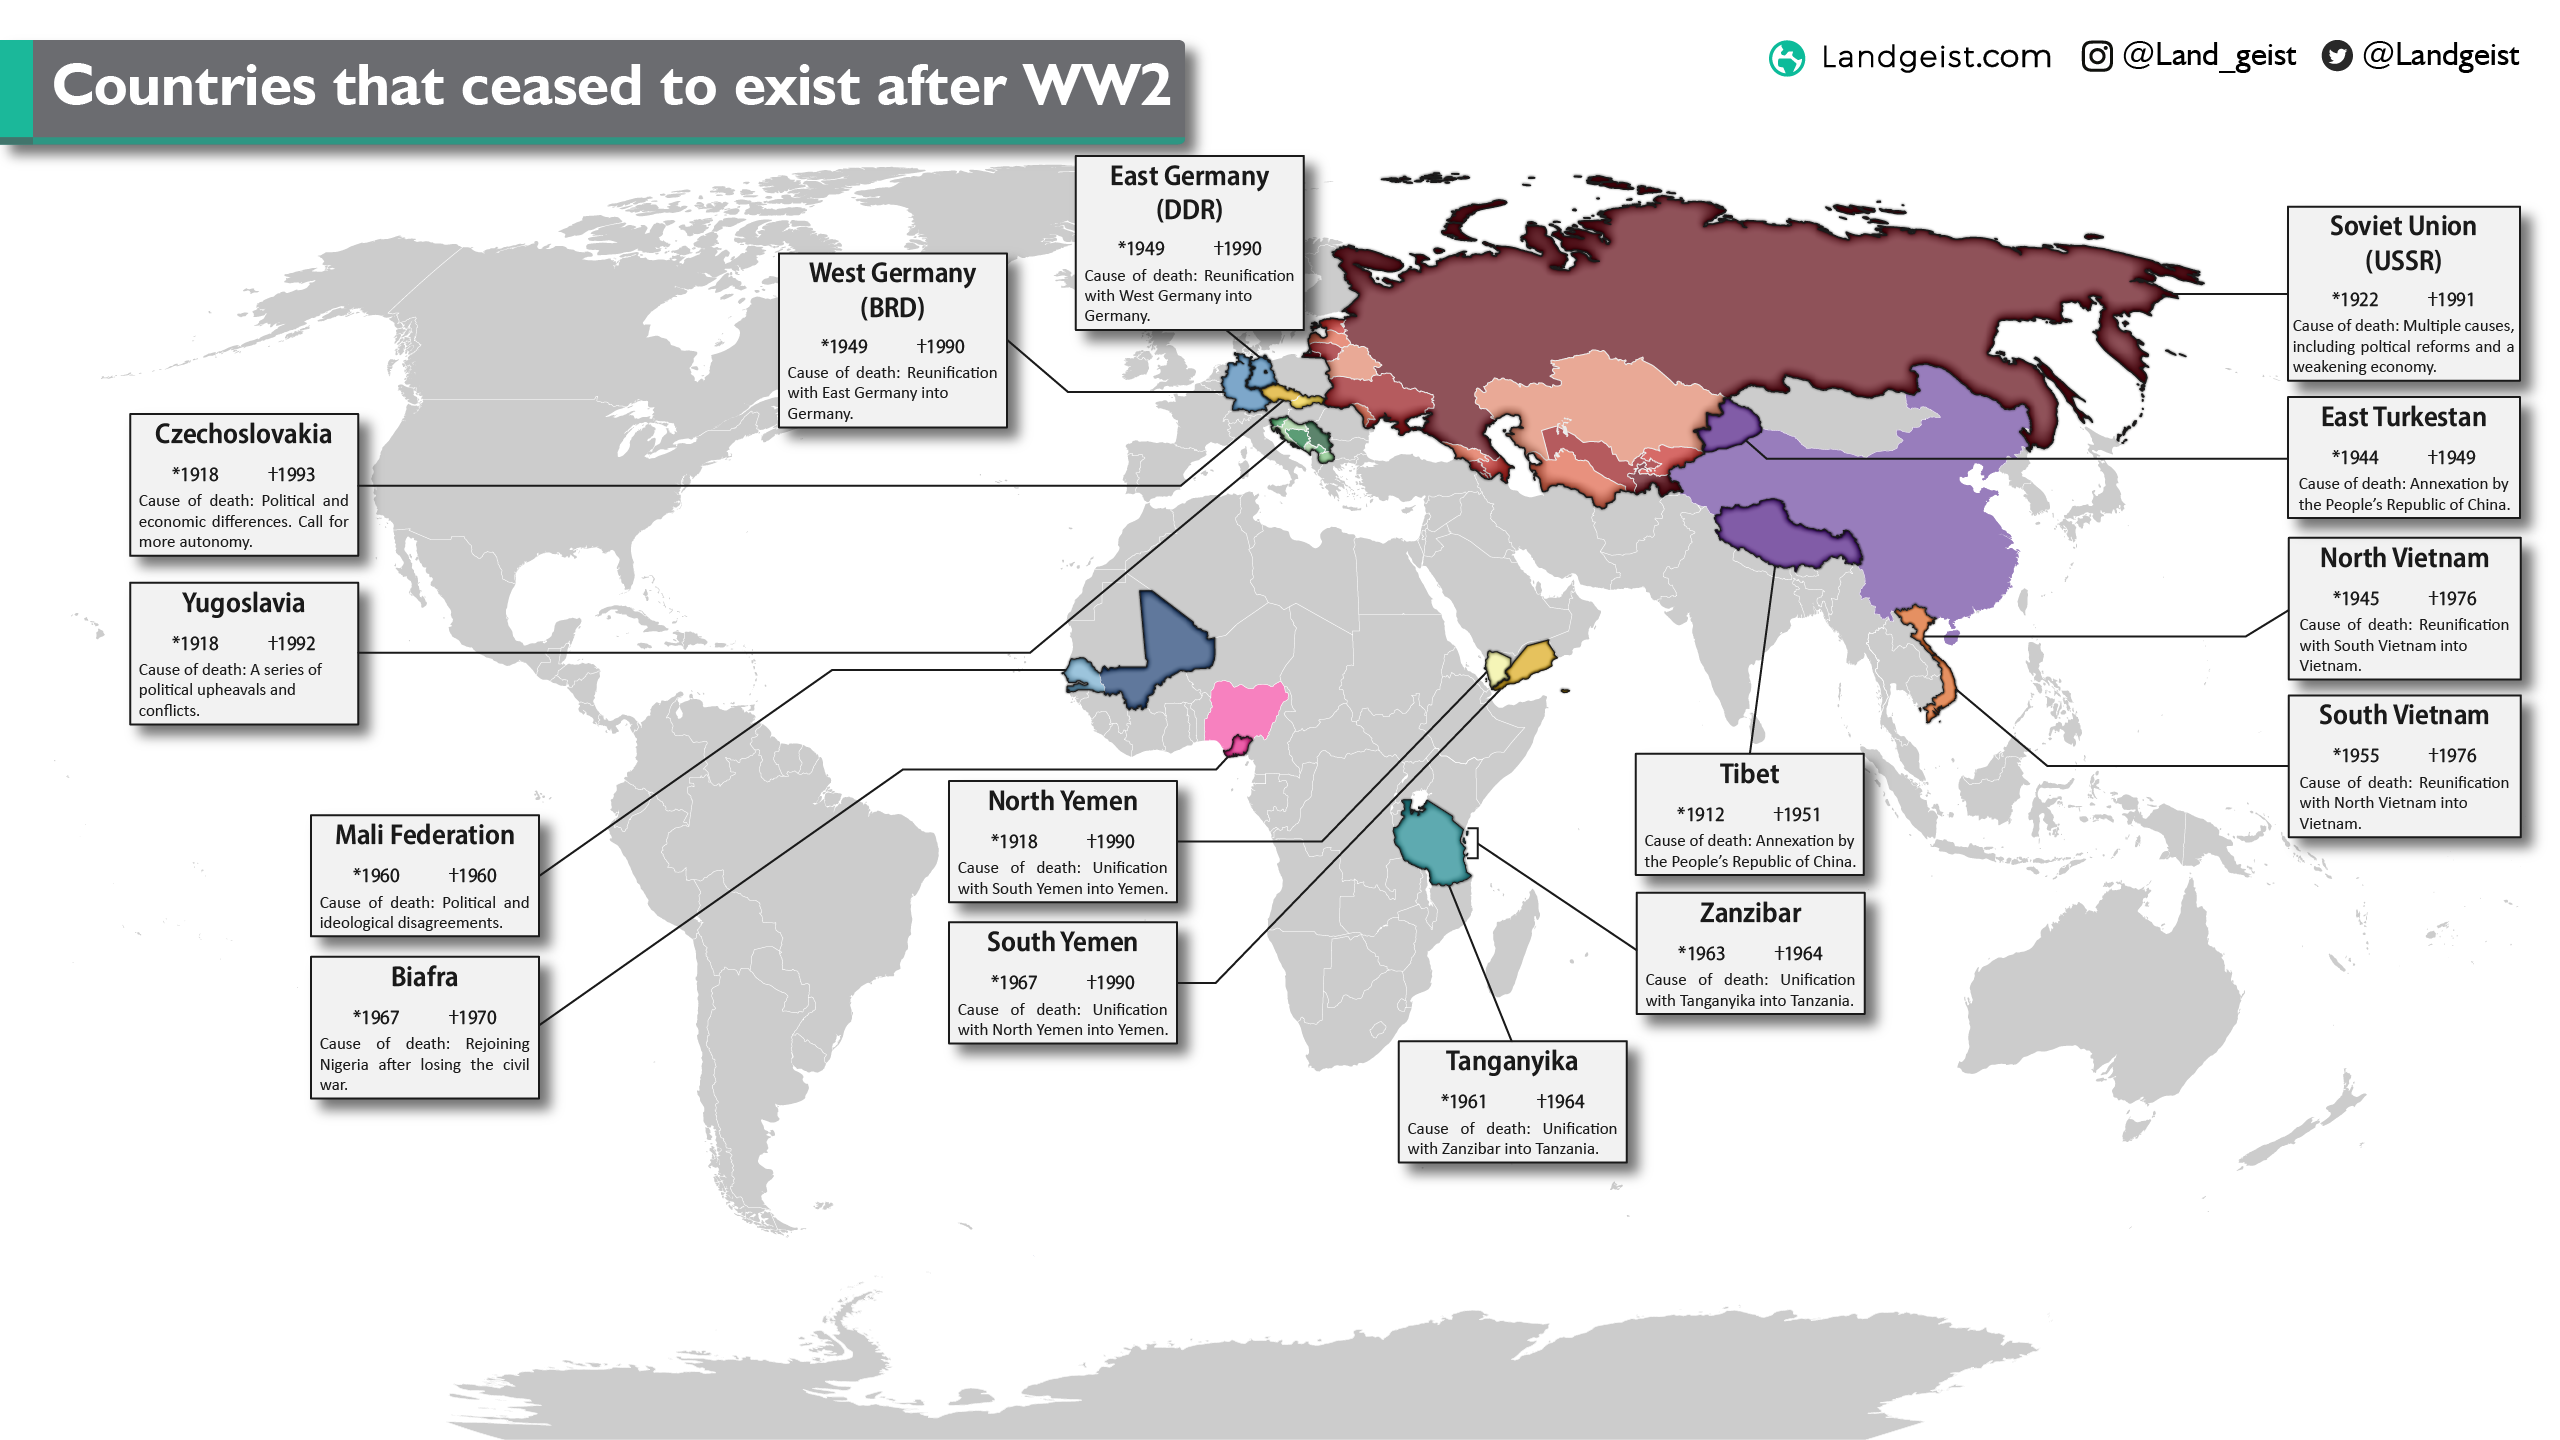 Map showing the countries that ceased to exist since WW2.